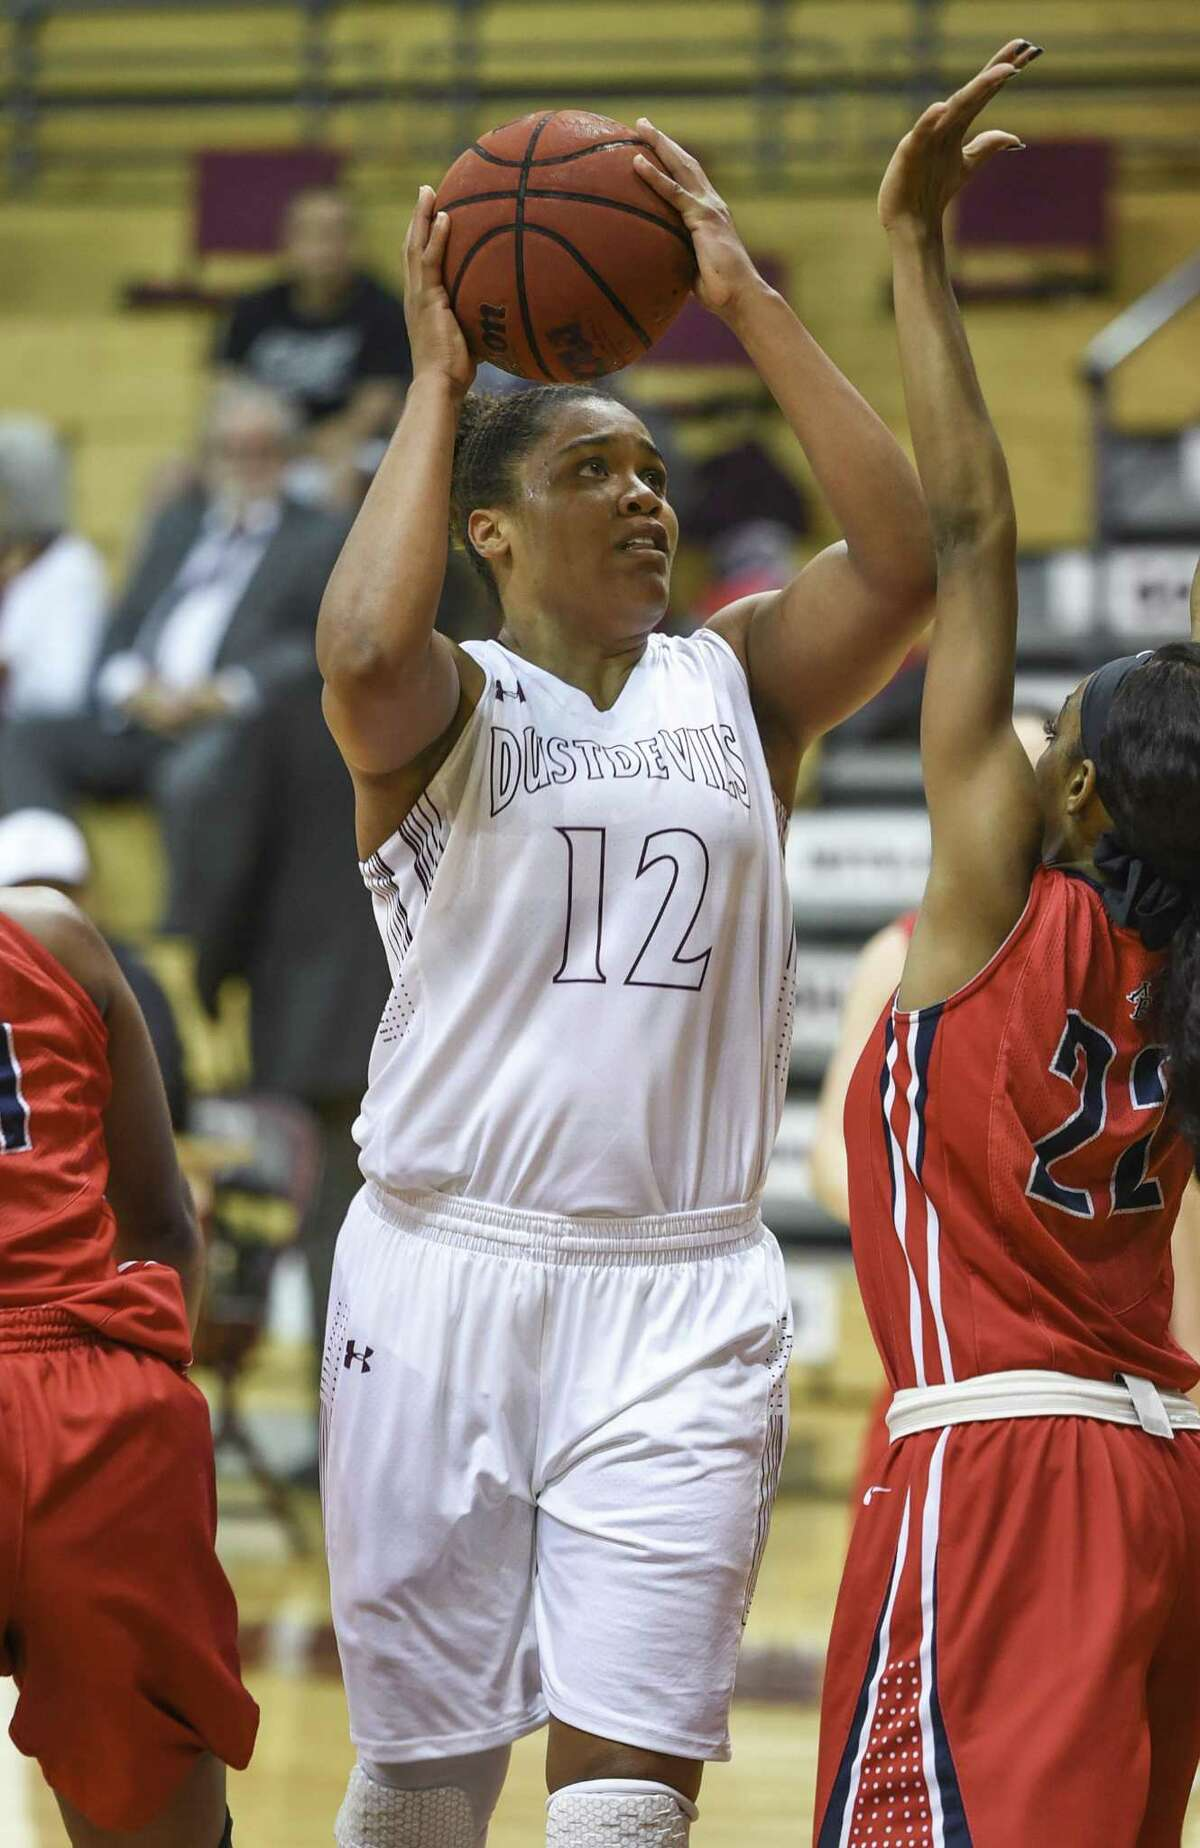 LaShae Rolle and the Dustdevils host Oklahoma Christian Thursday in a battle of two teams in the Heartland Conference still vying for their first league win.